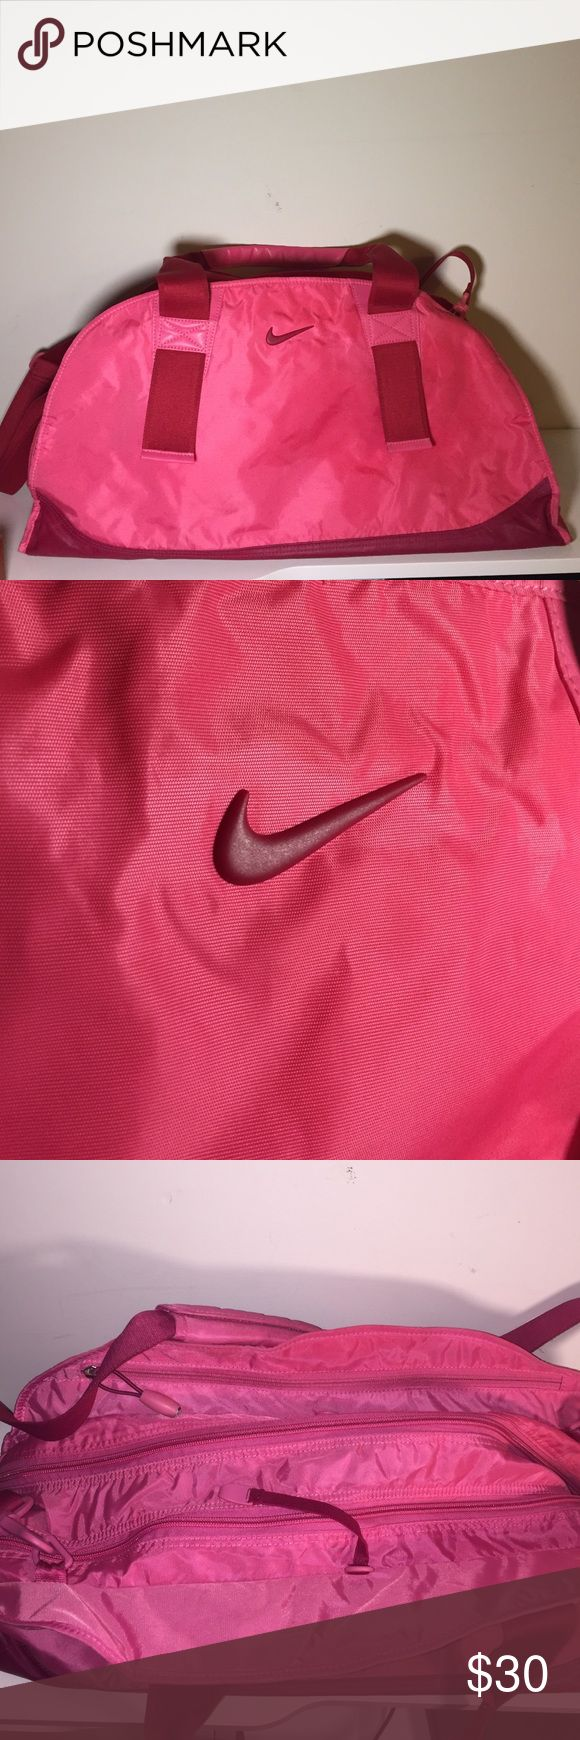 💖PRICE DROP💖 pink Nike duffle bag Nike pink duffle bag with three zippering compartments, I am willing to negotiate price☺️ Nike Bags